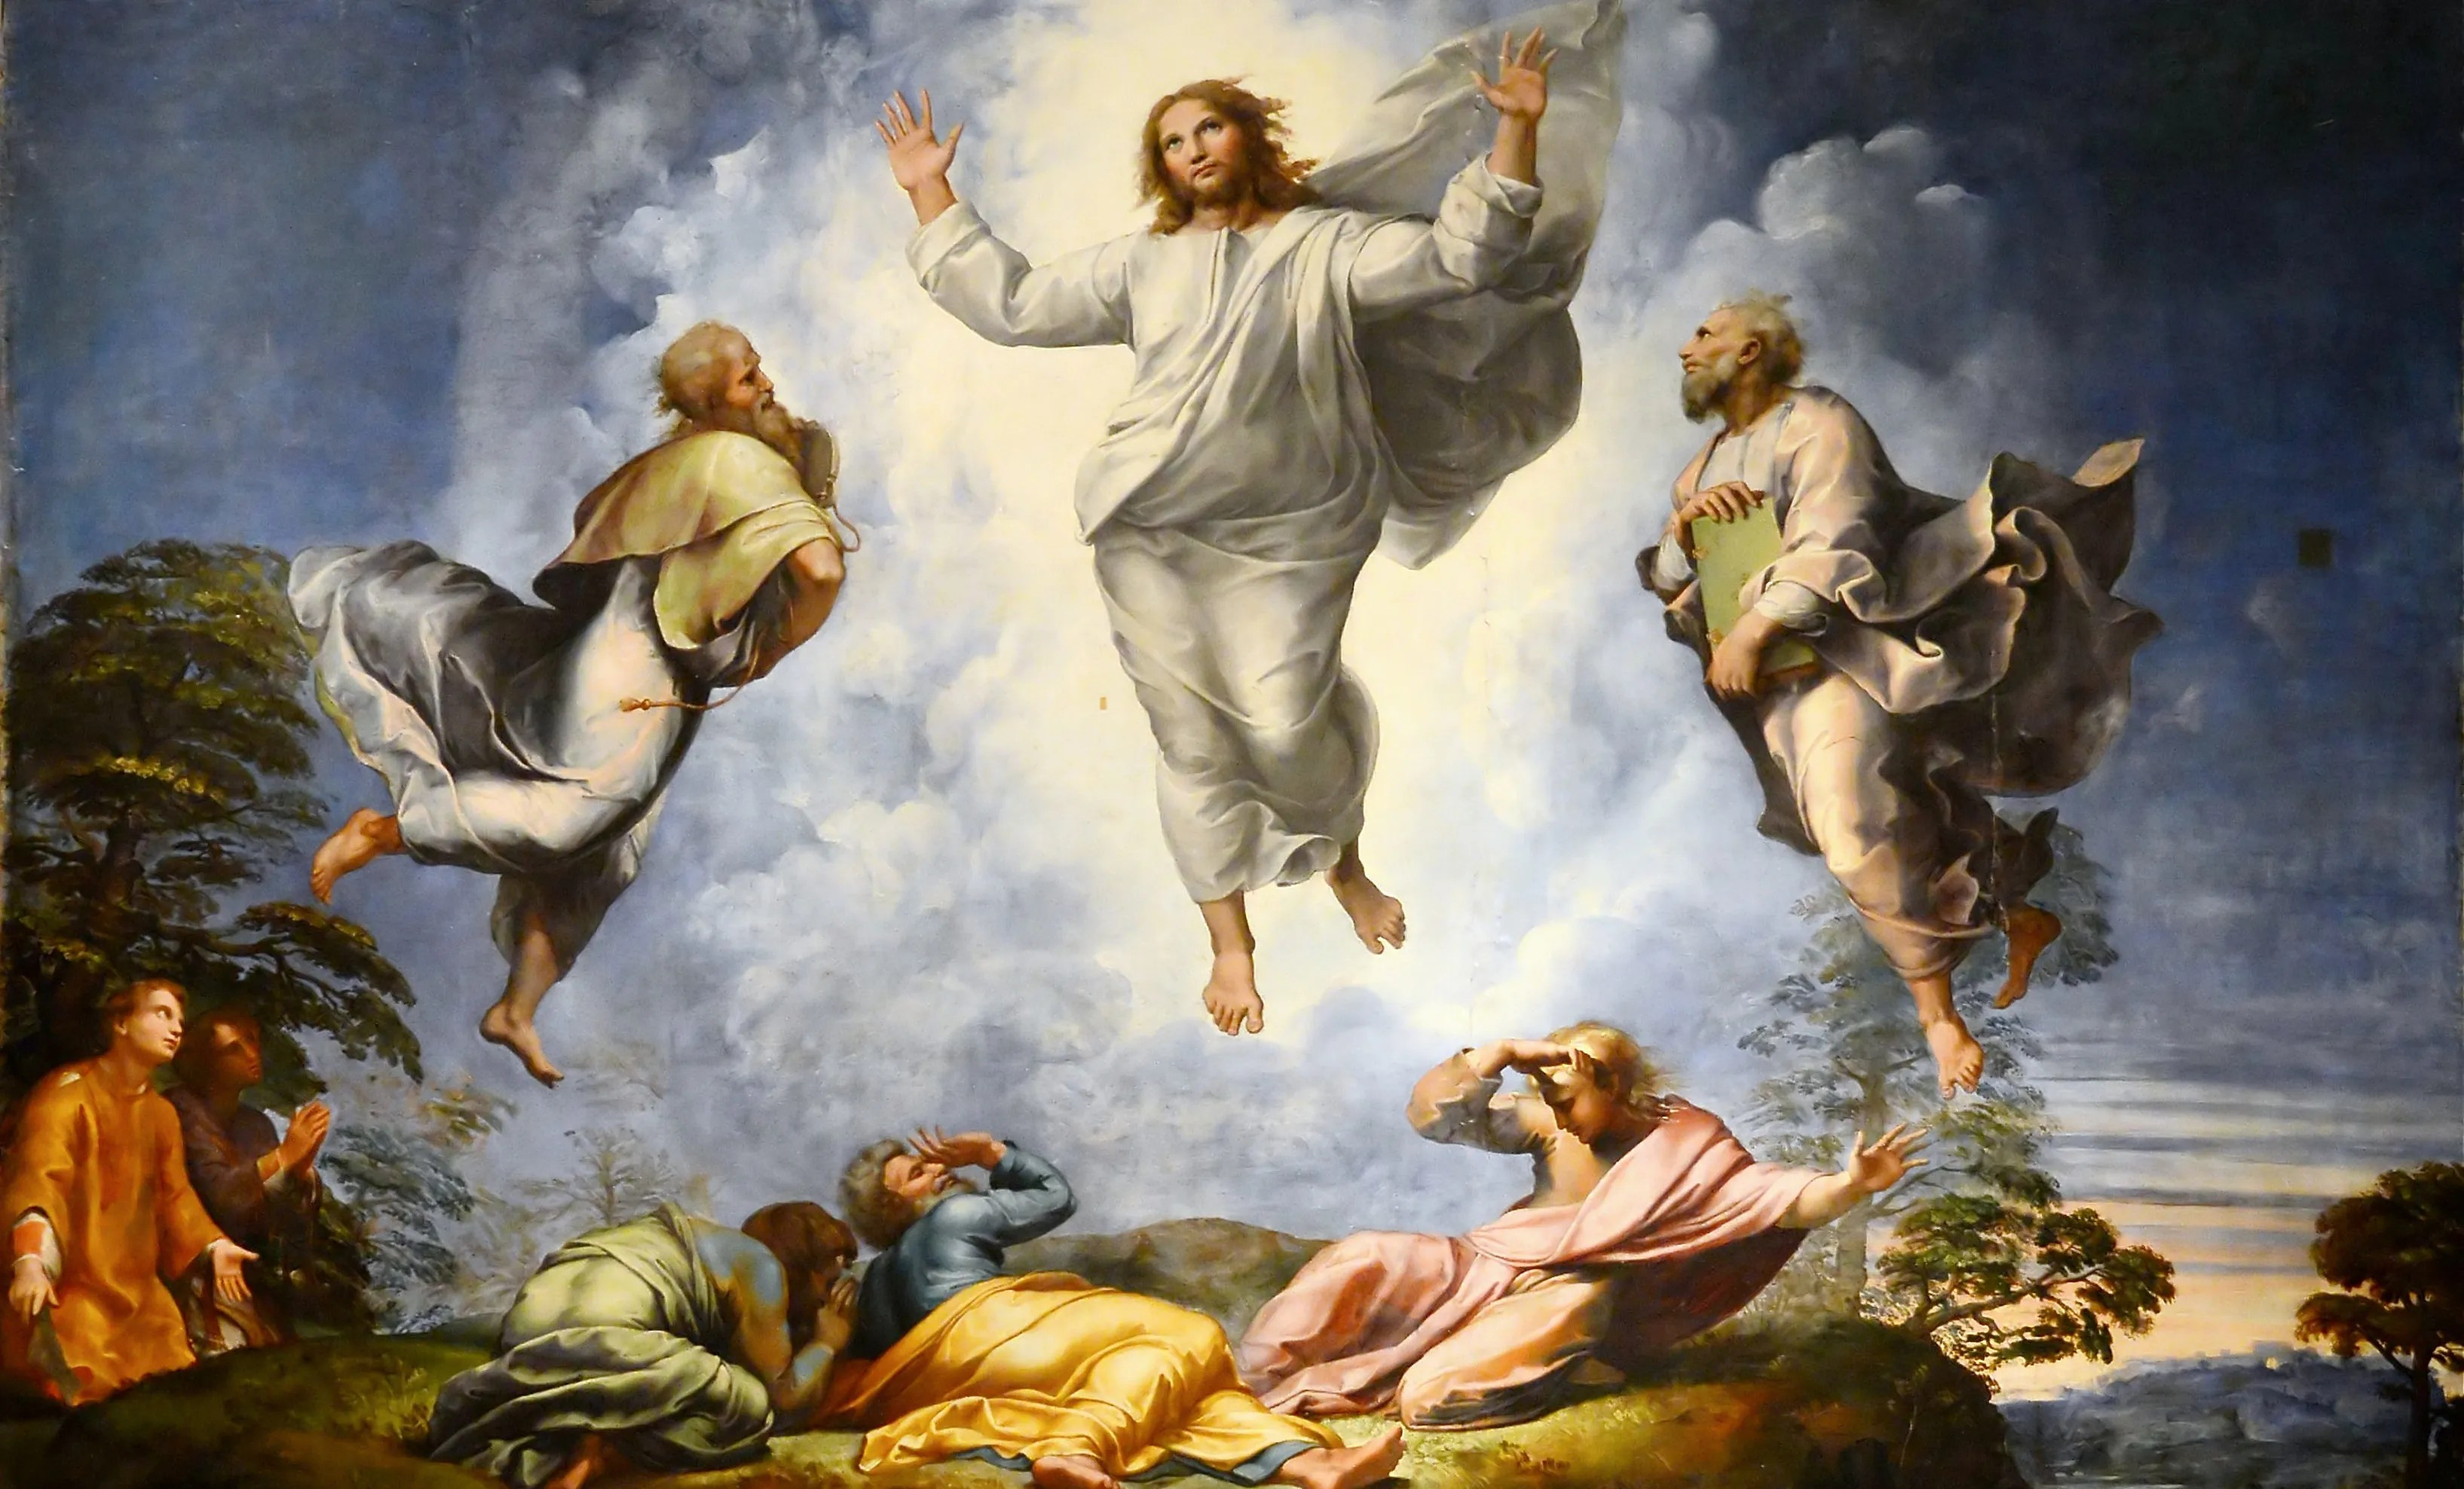 Transfiguration by Raphael